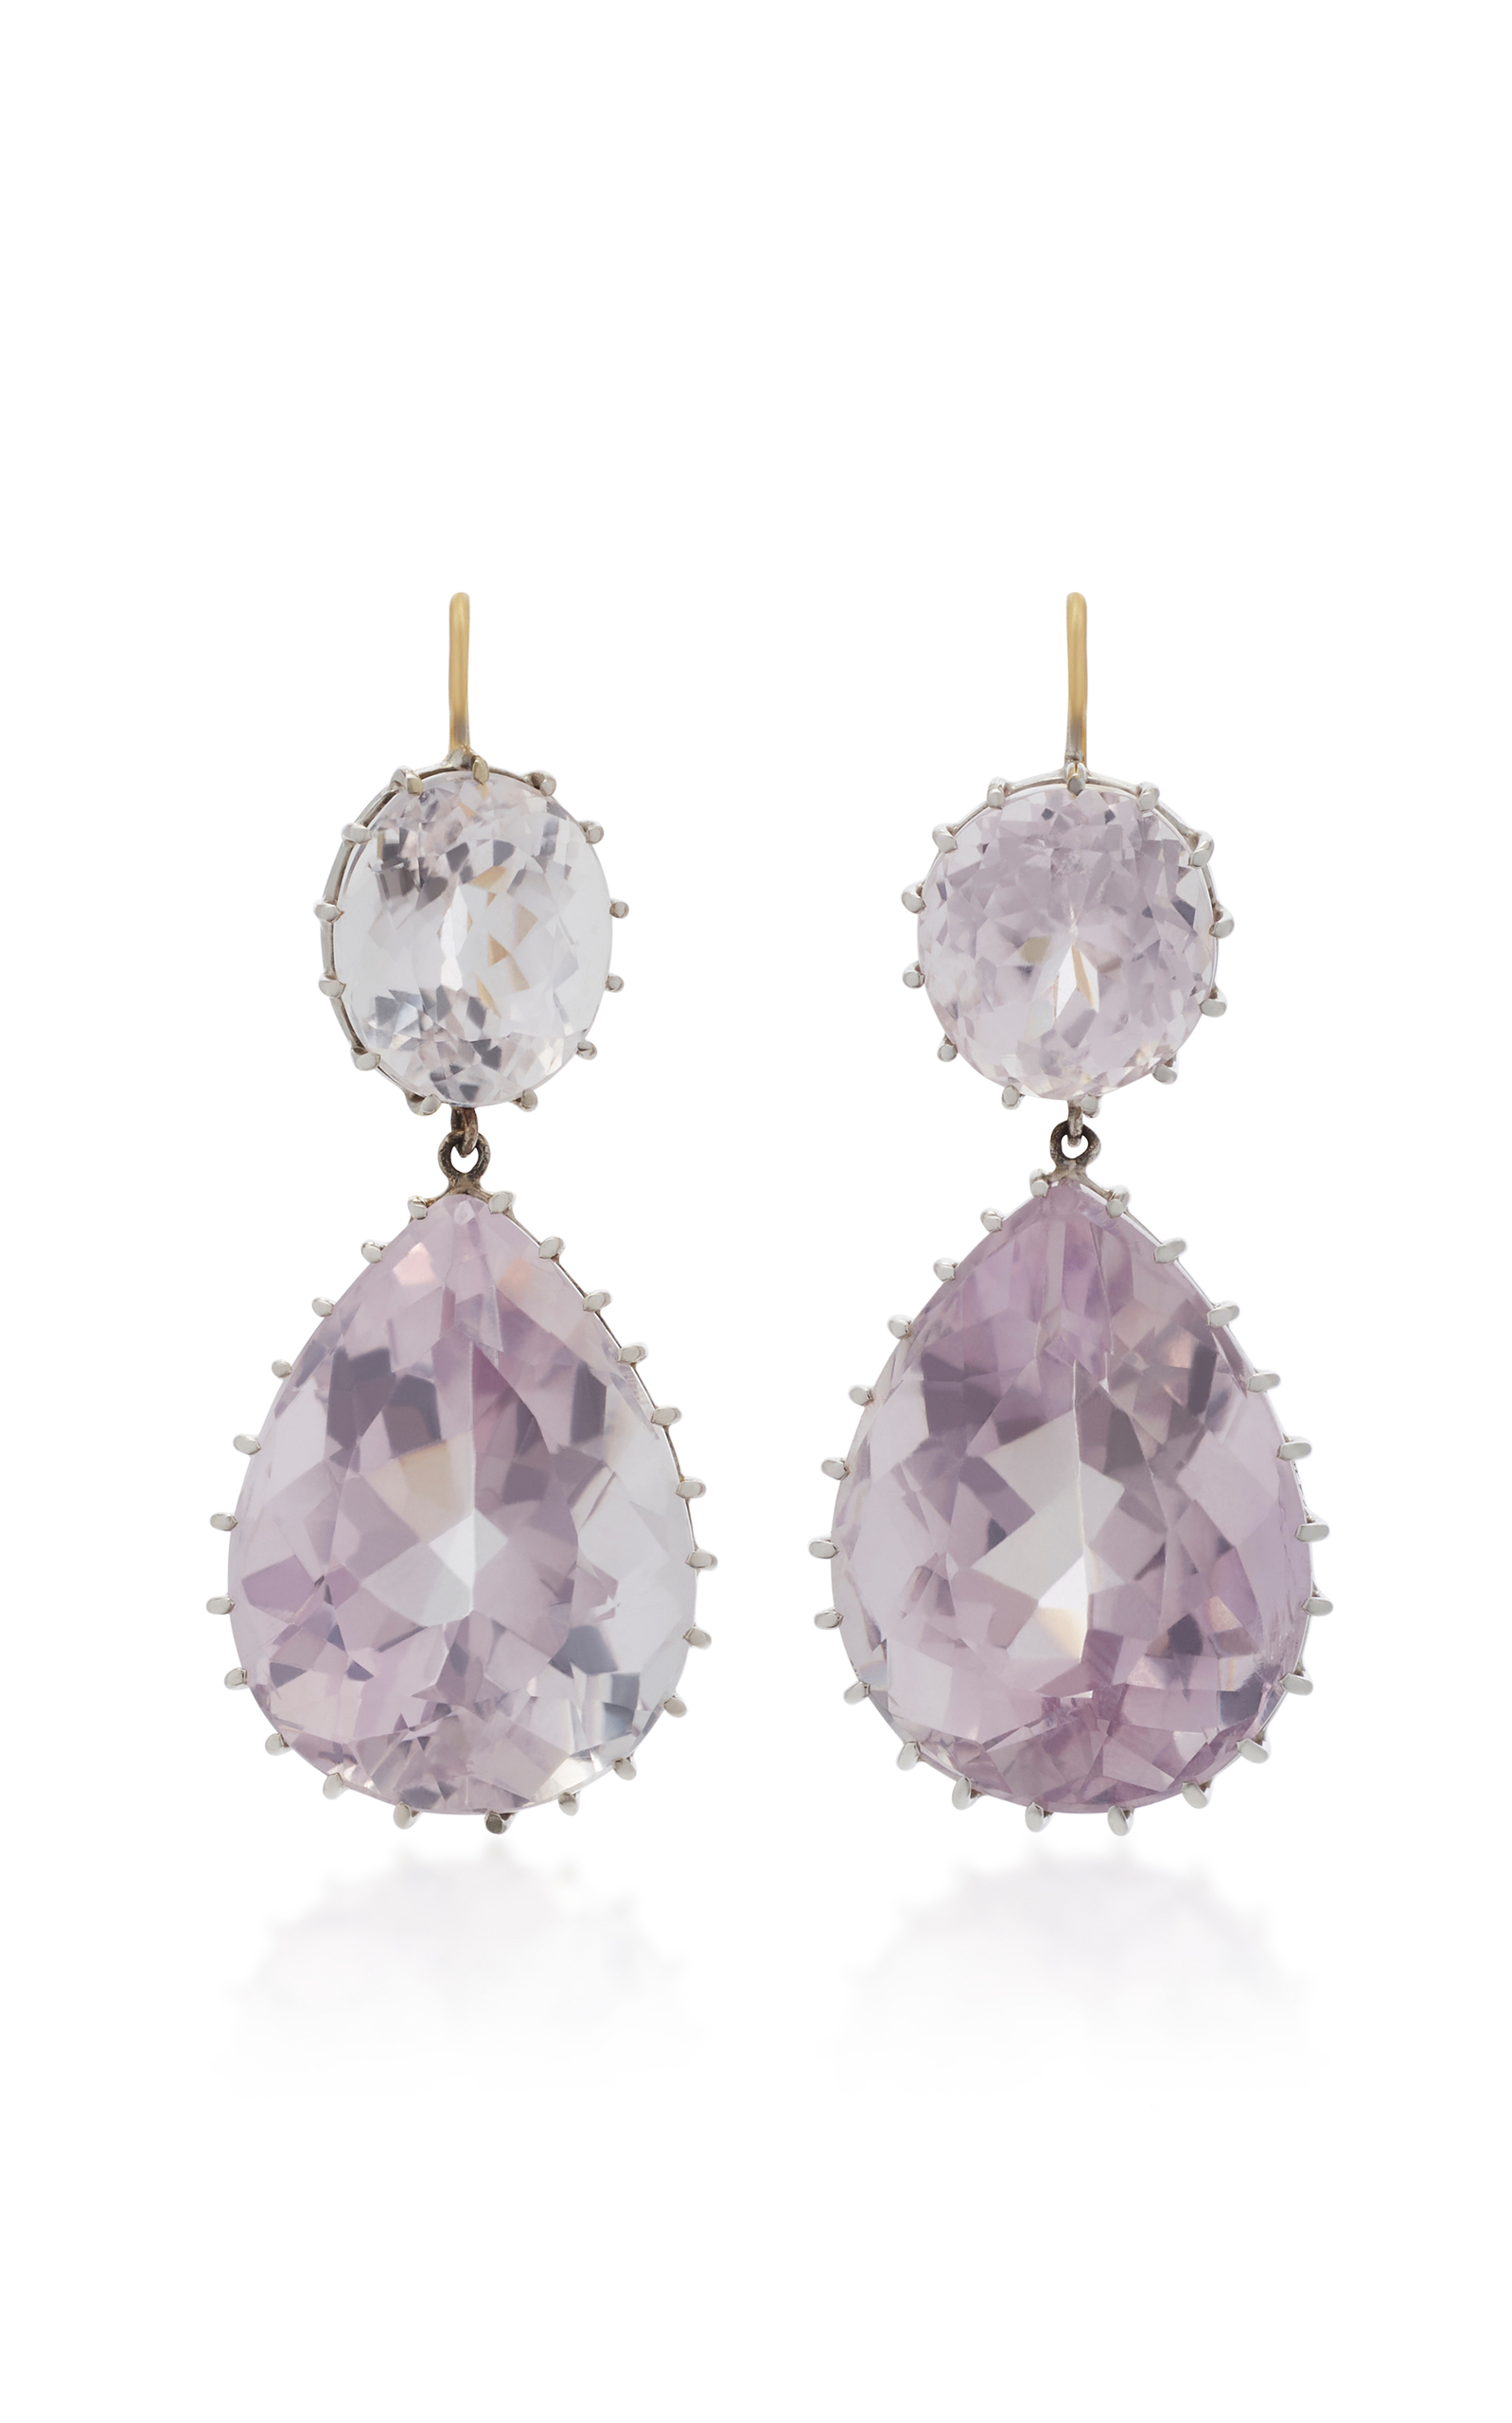 discovered aquamarine raw goods amet kunzite earrings